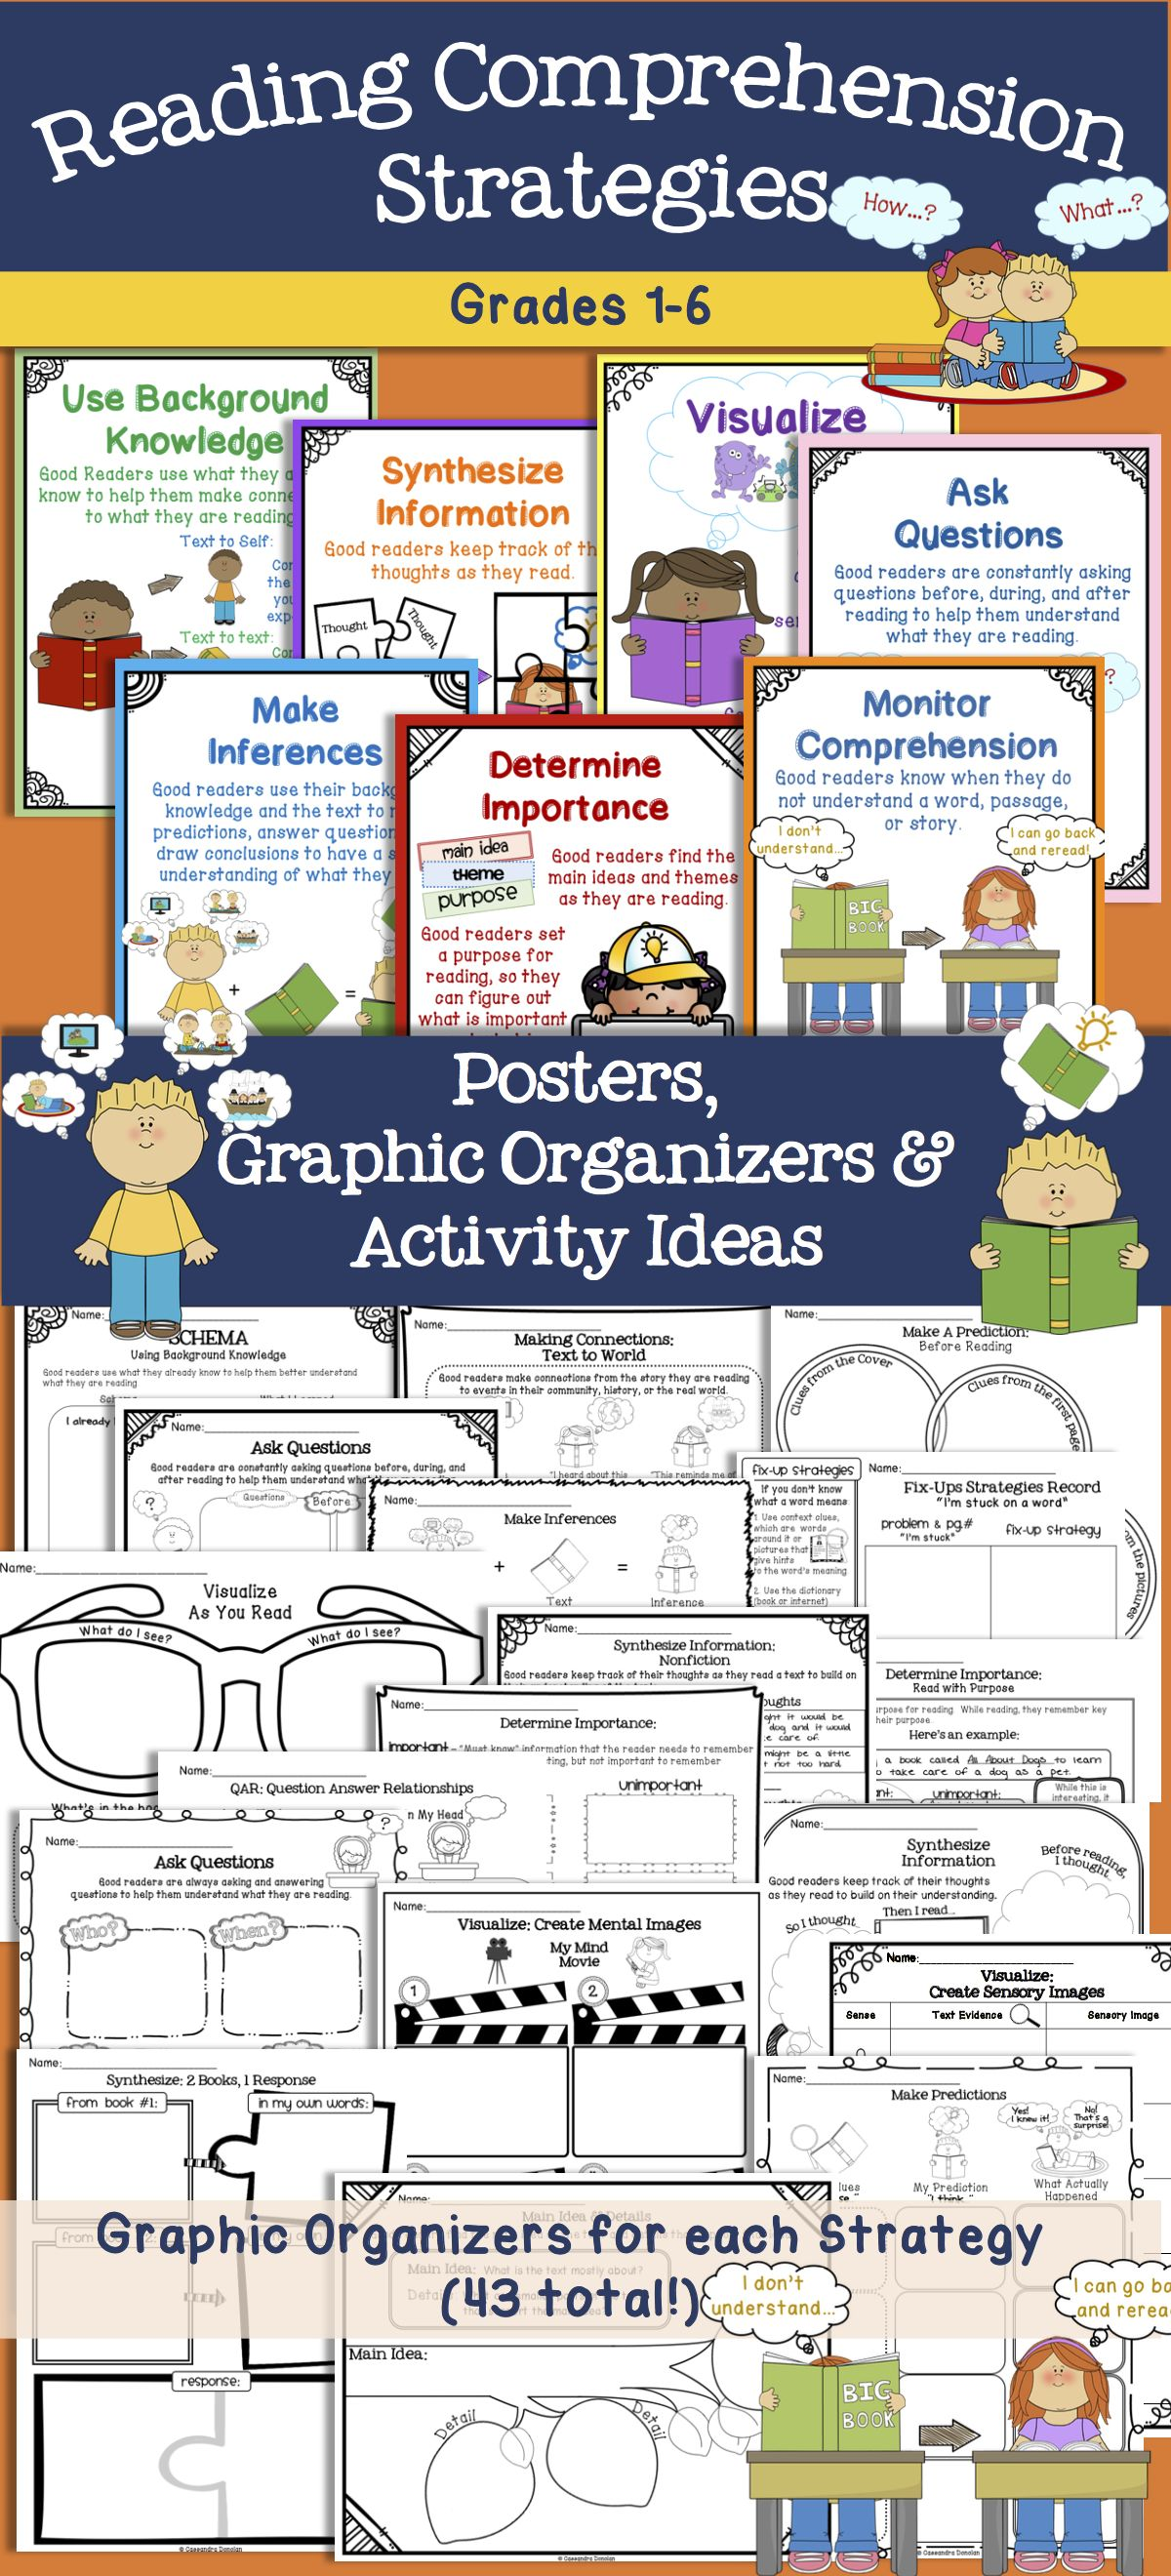 Reading Comprehension Strategies Posters Tons Of Graphic Organizers Grades 1 6 Research Based From 7 Keys To